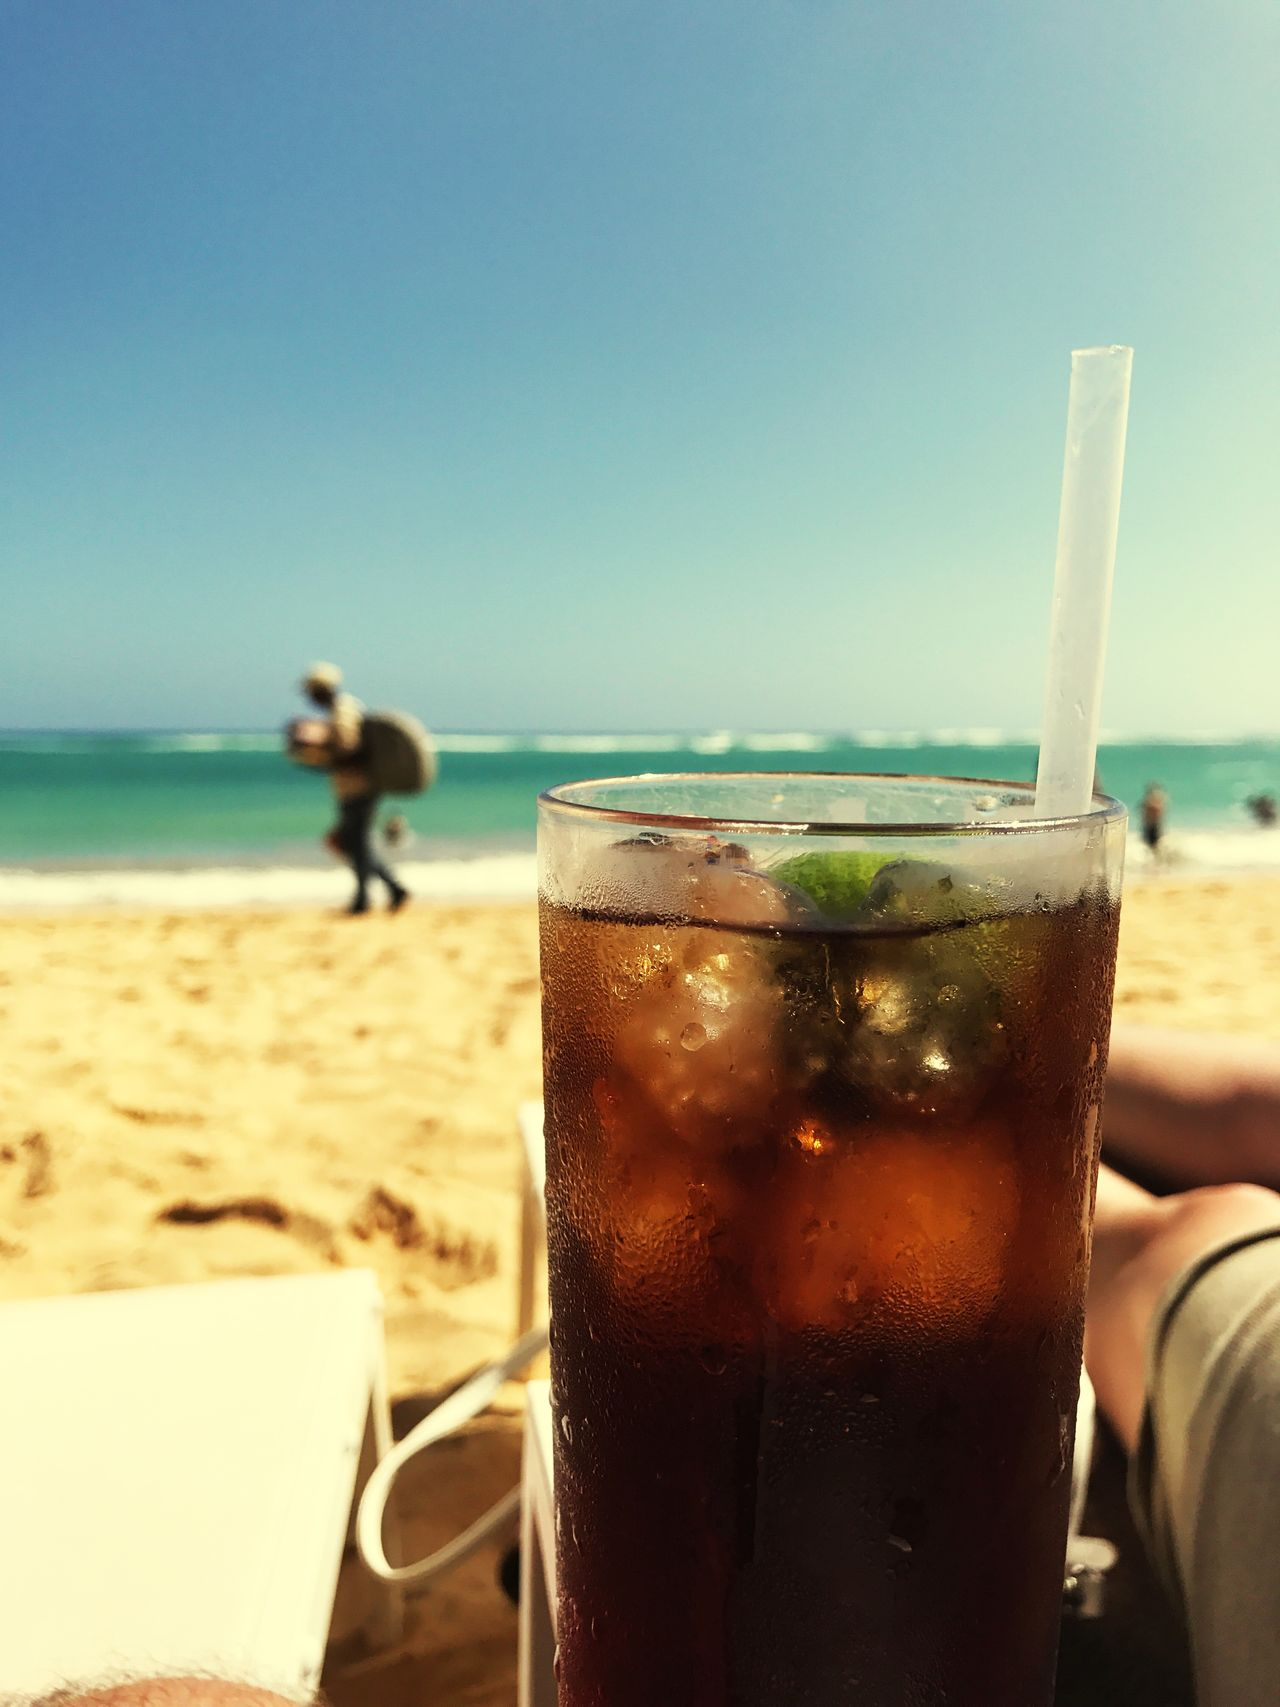 Sea Beach Drink Clear Sky Refreshment Beachlife Food And Drink Sand Sky Horizon Over Water Nature Outdoors Day Vacations Water Men One Person Freshness Close-up